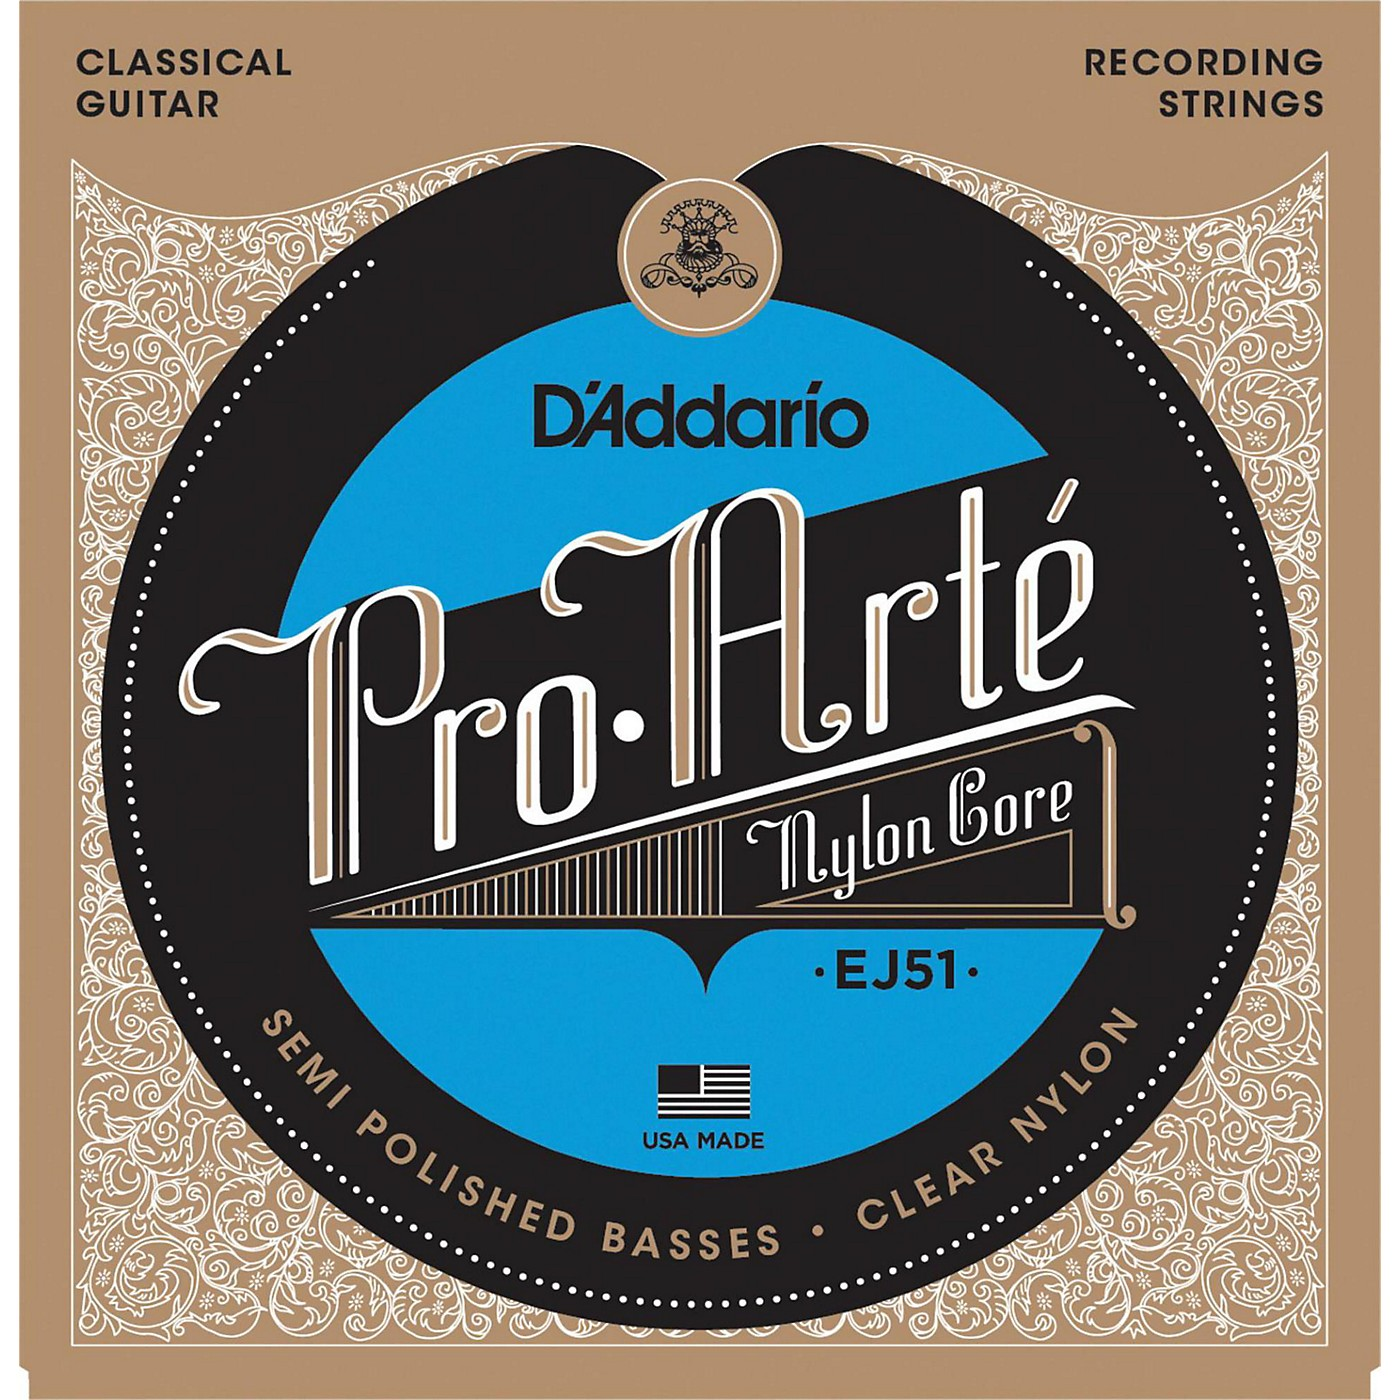 D'Addario EJ51 Pro-Arte Semi Polished Basses Hard Tension Classical Guitar Strings thumbnail